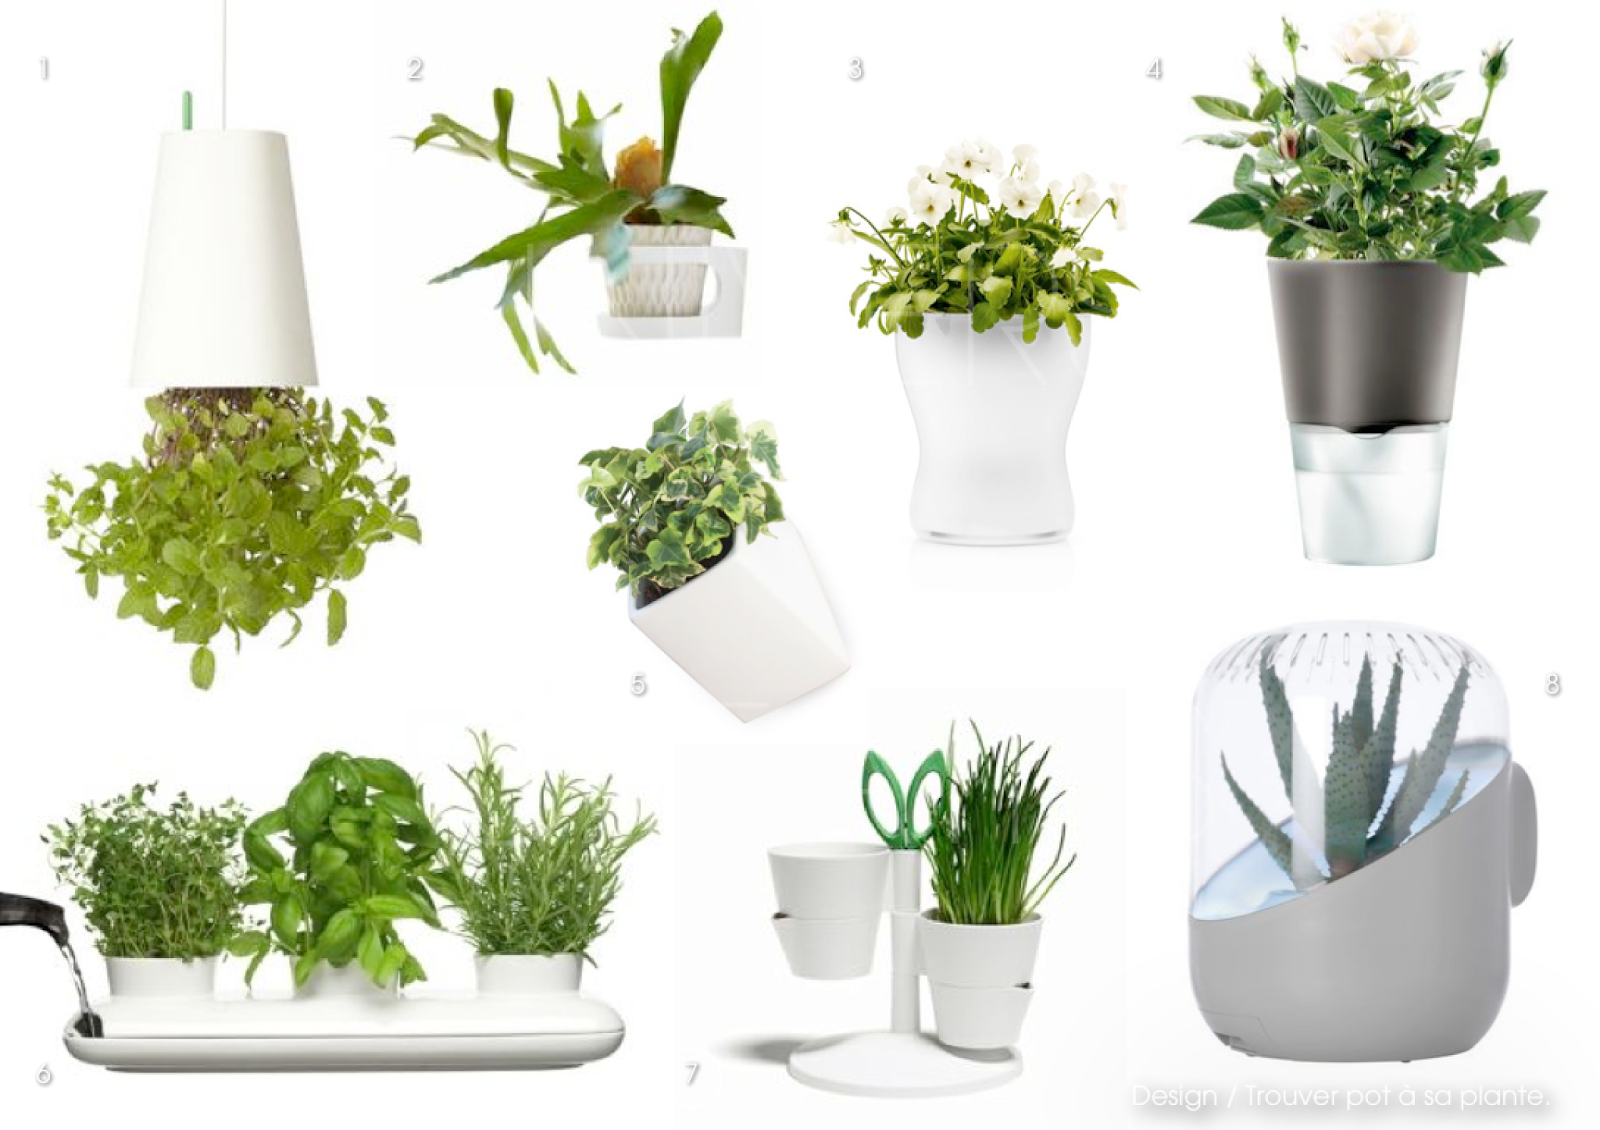 Univers Creatifs Design Trouver Pot A Sa Plante